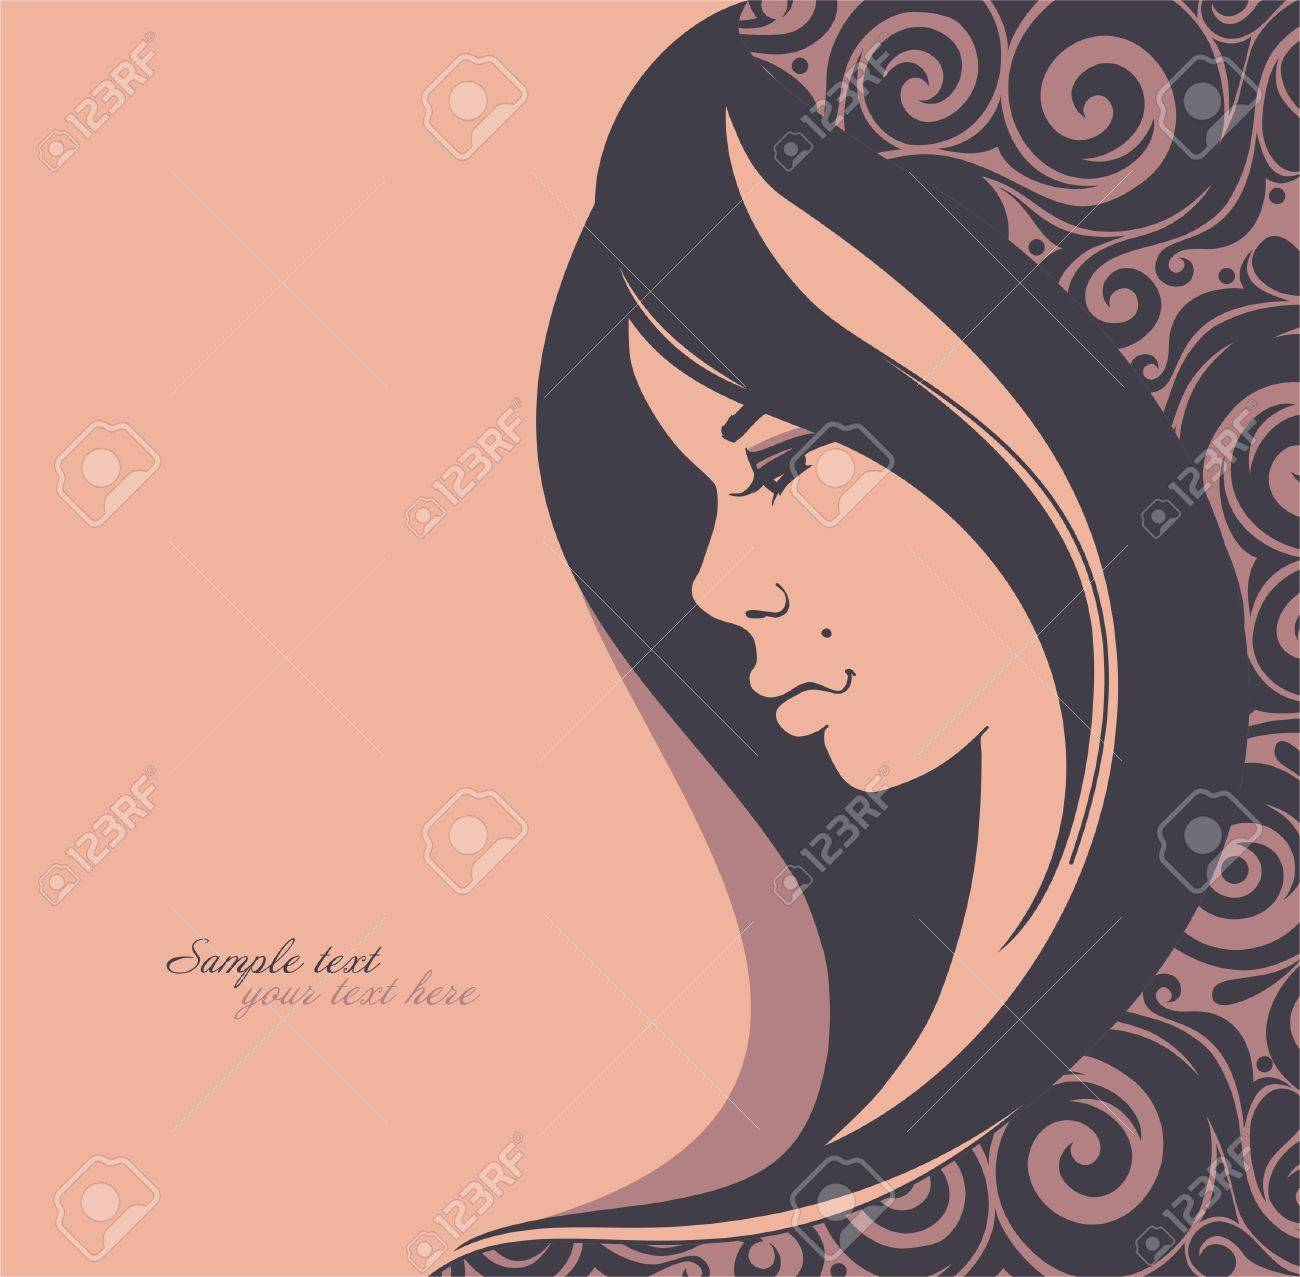 Stylish face of woman with beautiful hair_Fashion illustration Stock Vector - 13365904